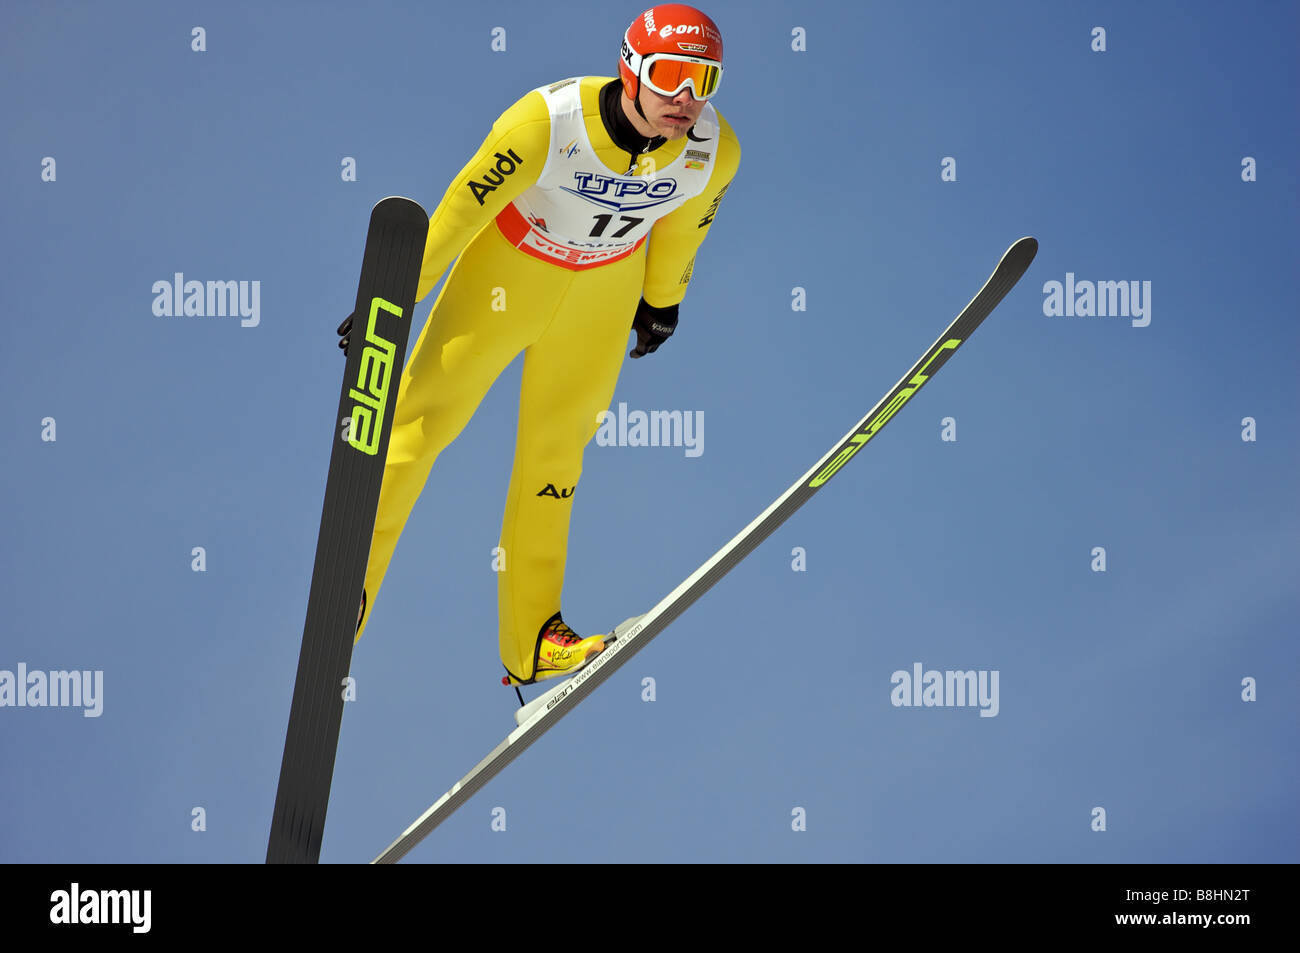 Christian BEETZ (GER) FIS World Cup Nordic Combined Ski jumping Lahti Finland 2008 - Stock Image